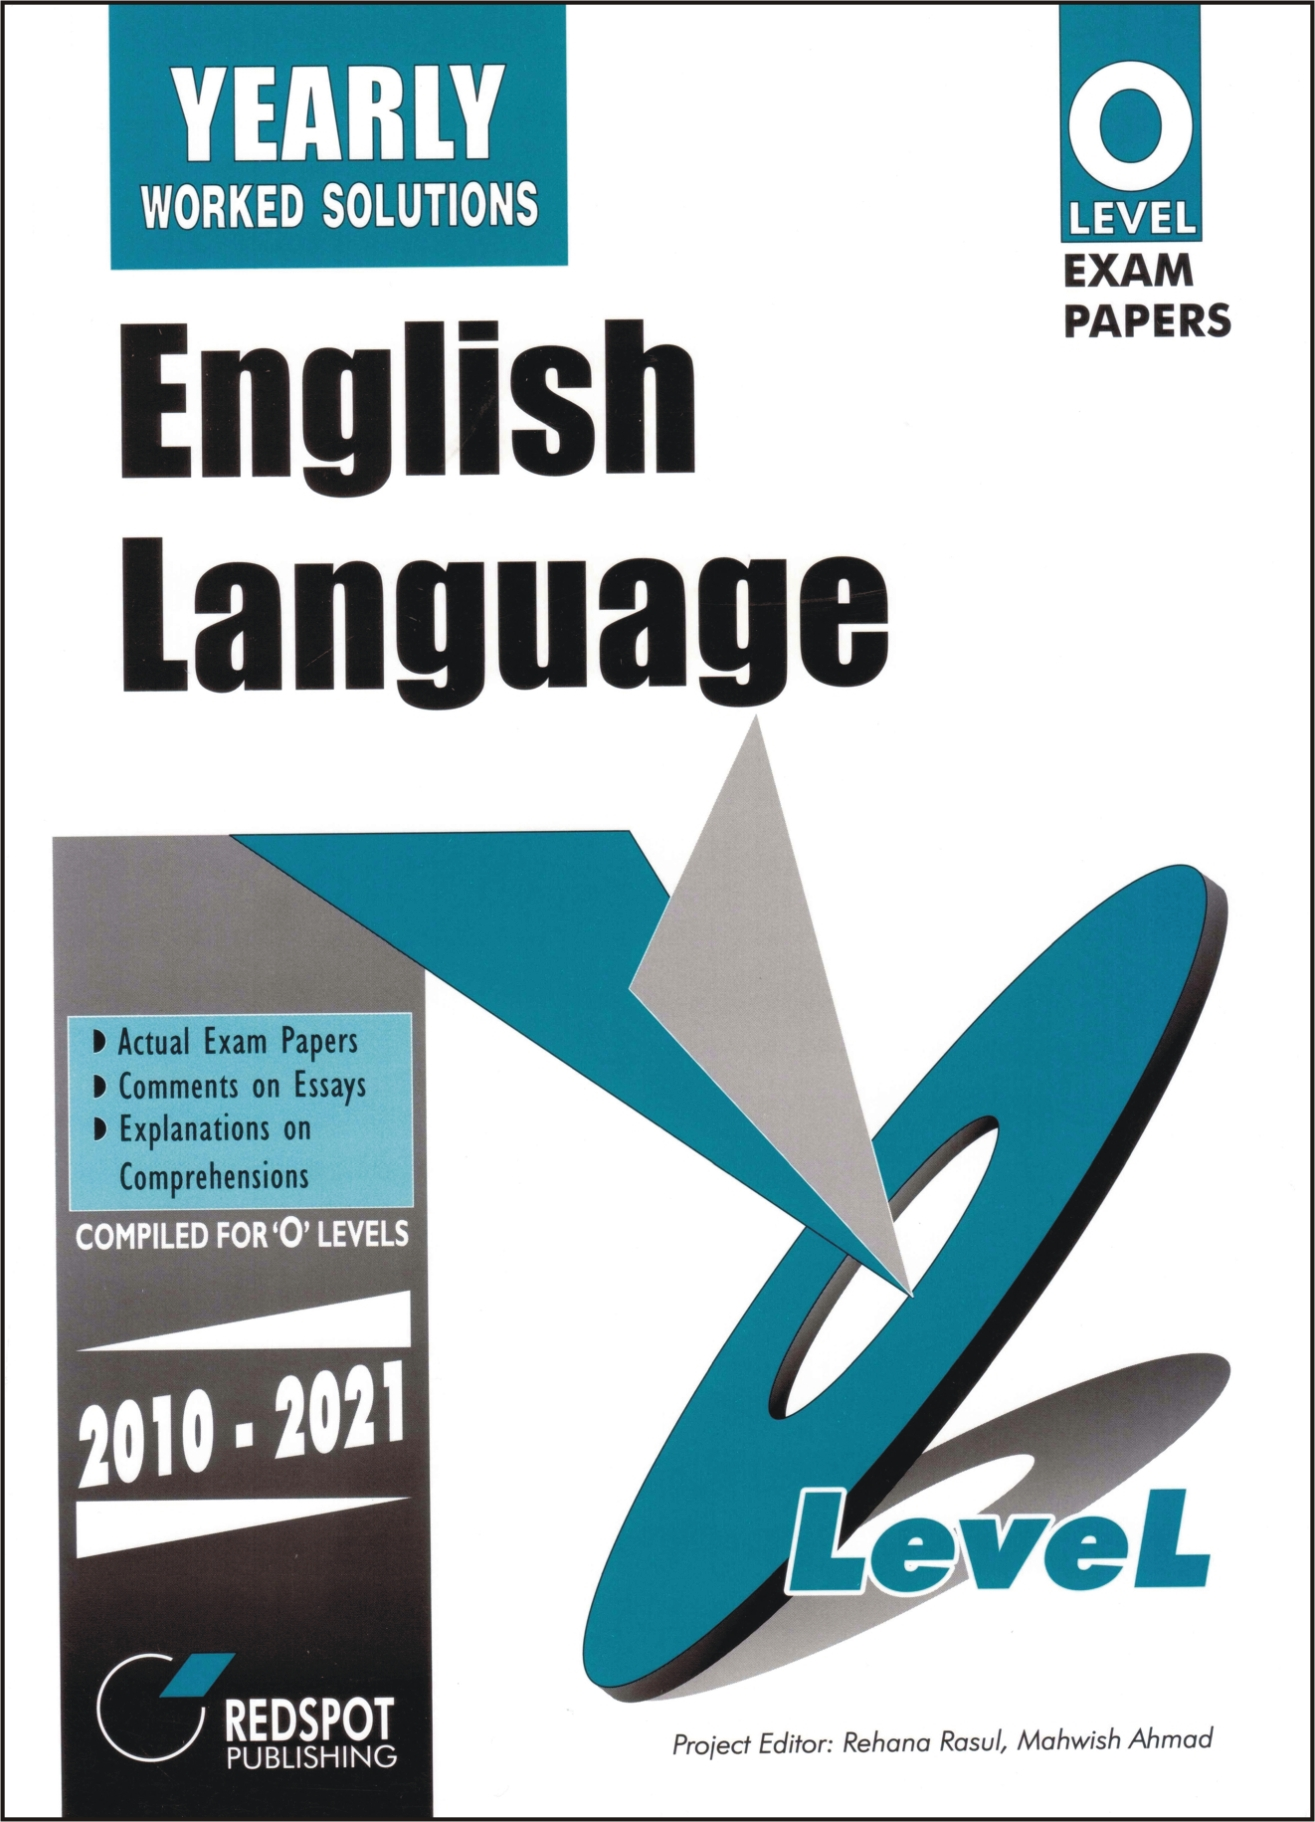 a level english language essay help